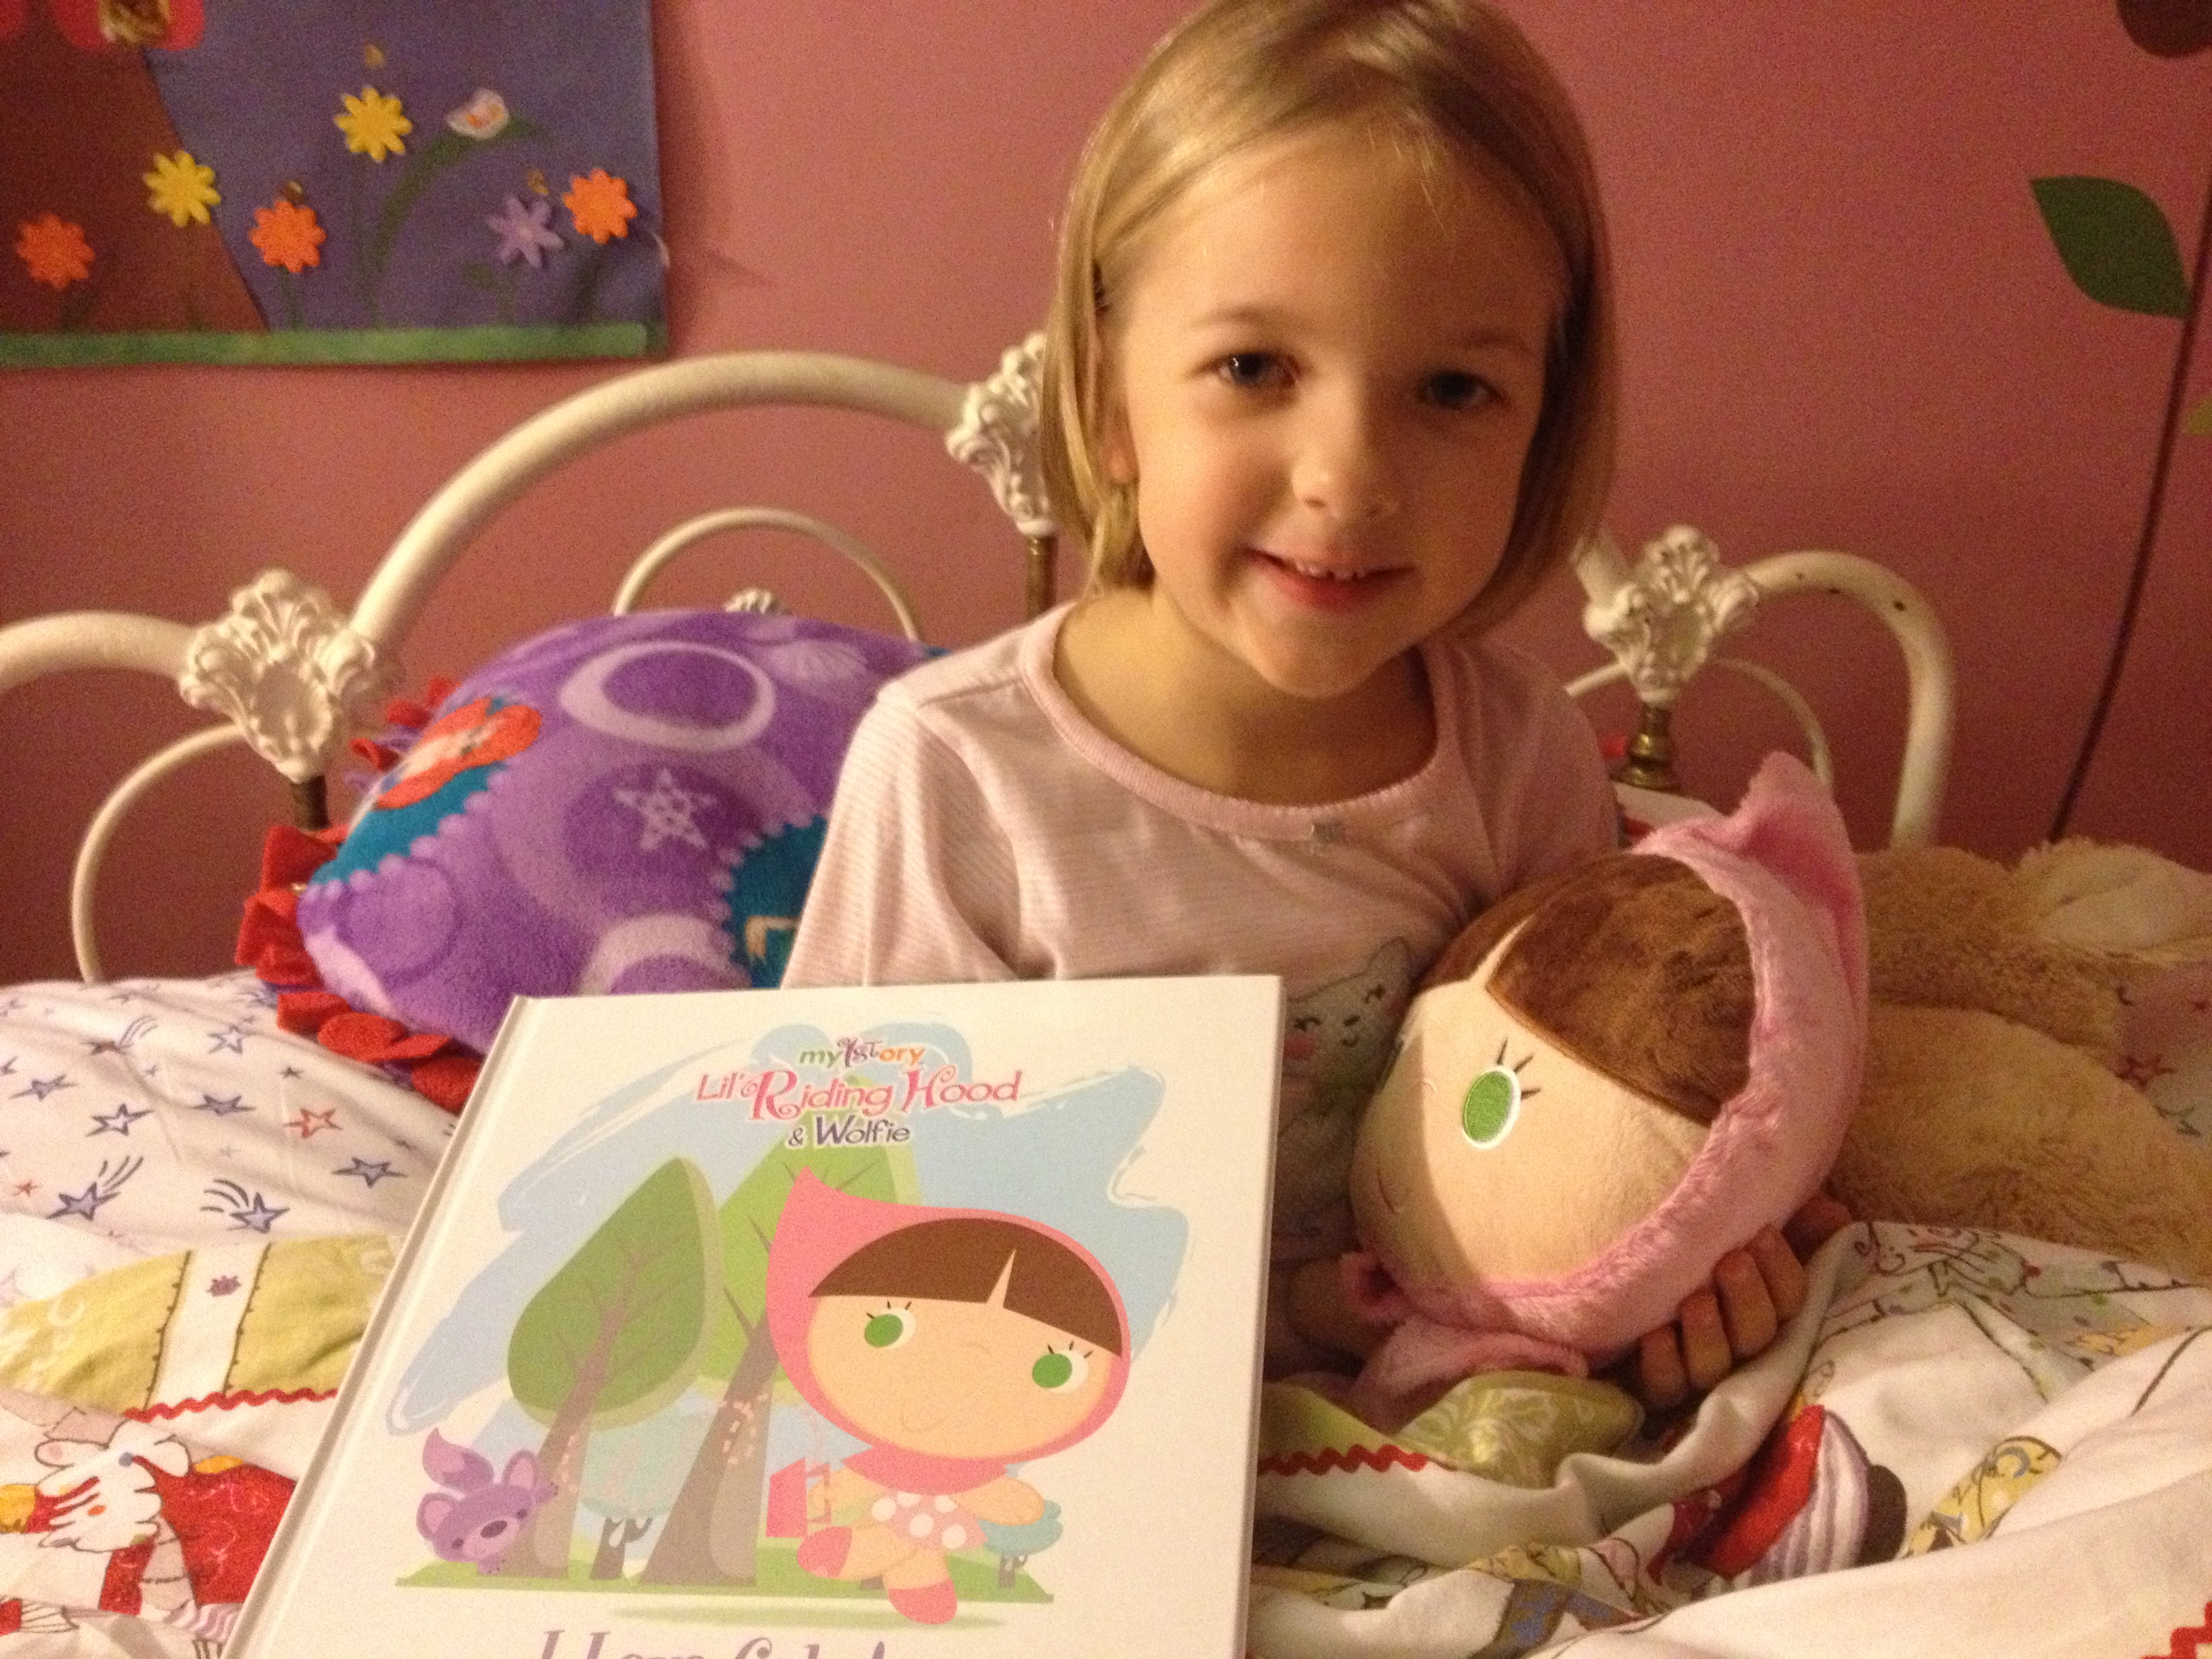 Review: My1story Fairytales: Lil' Riding Hood